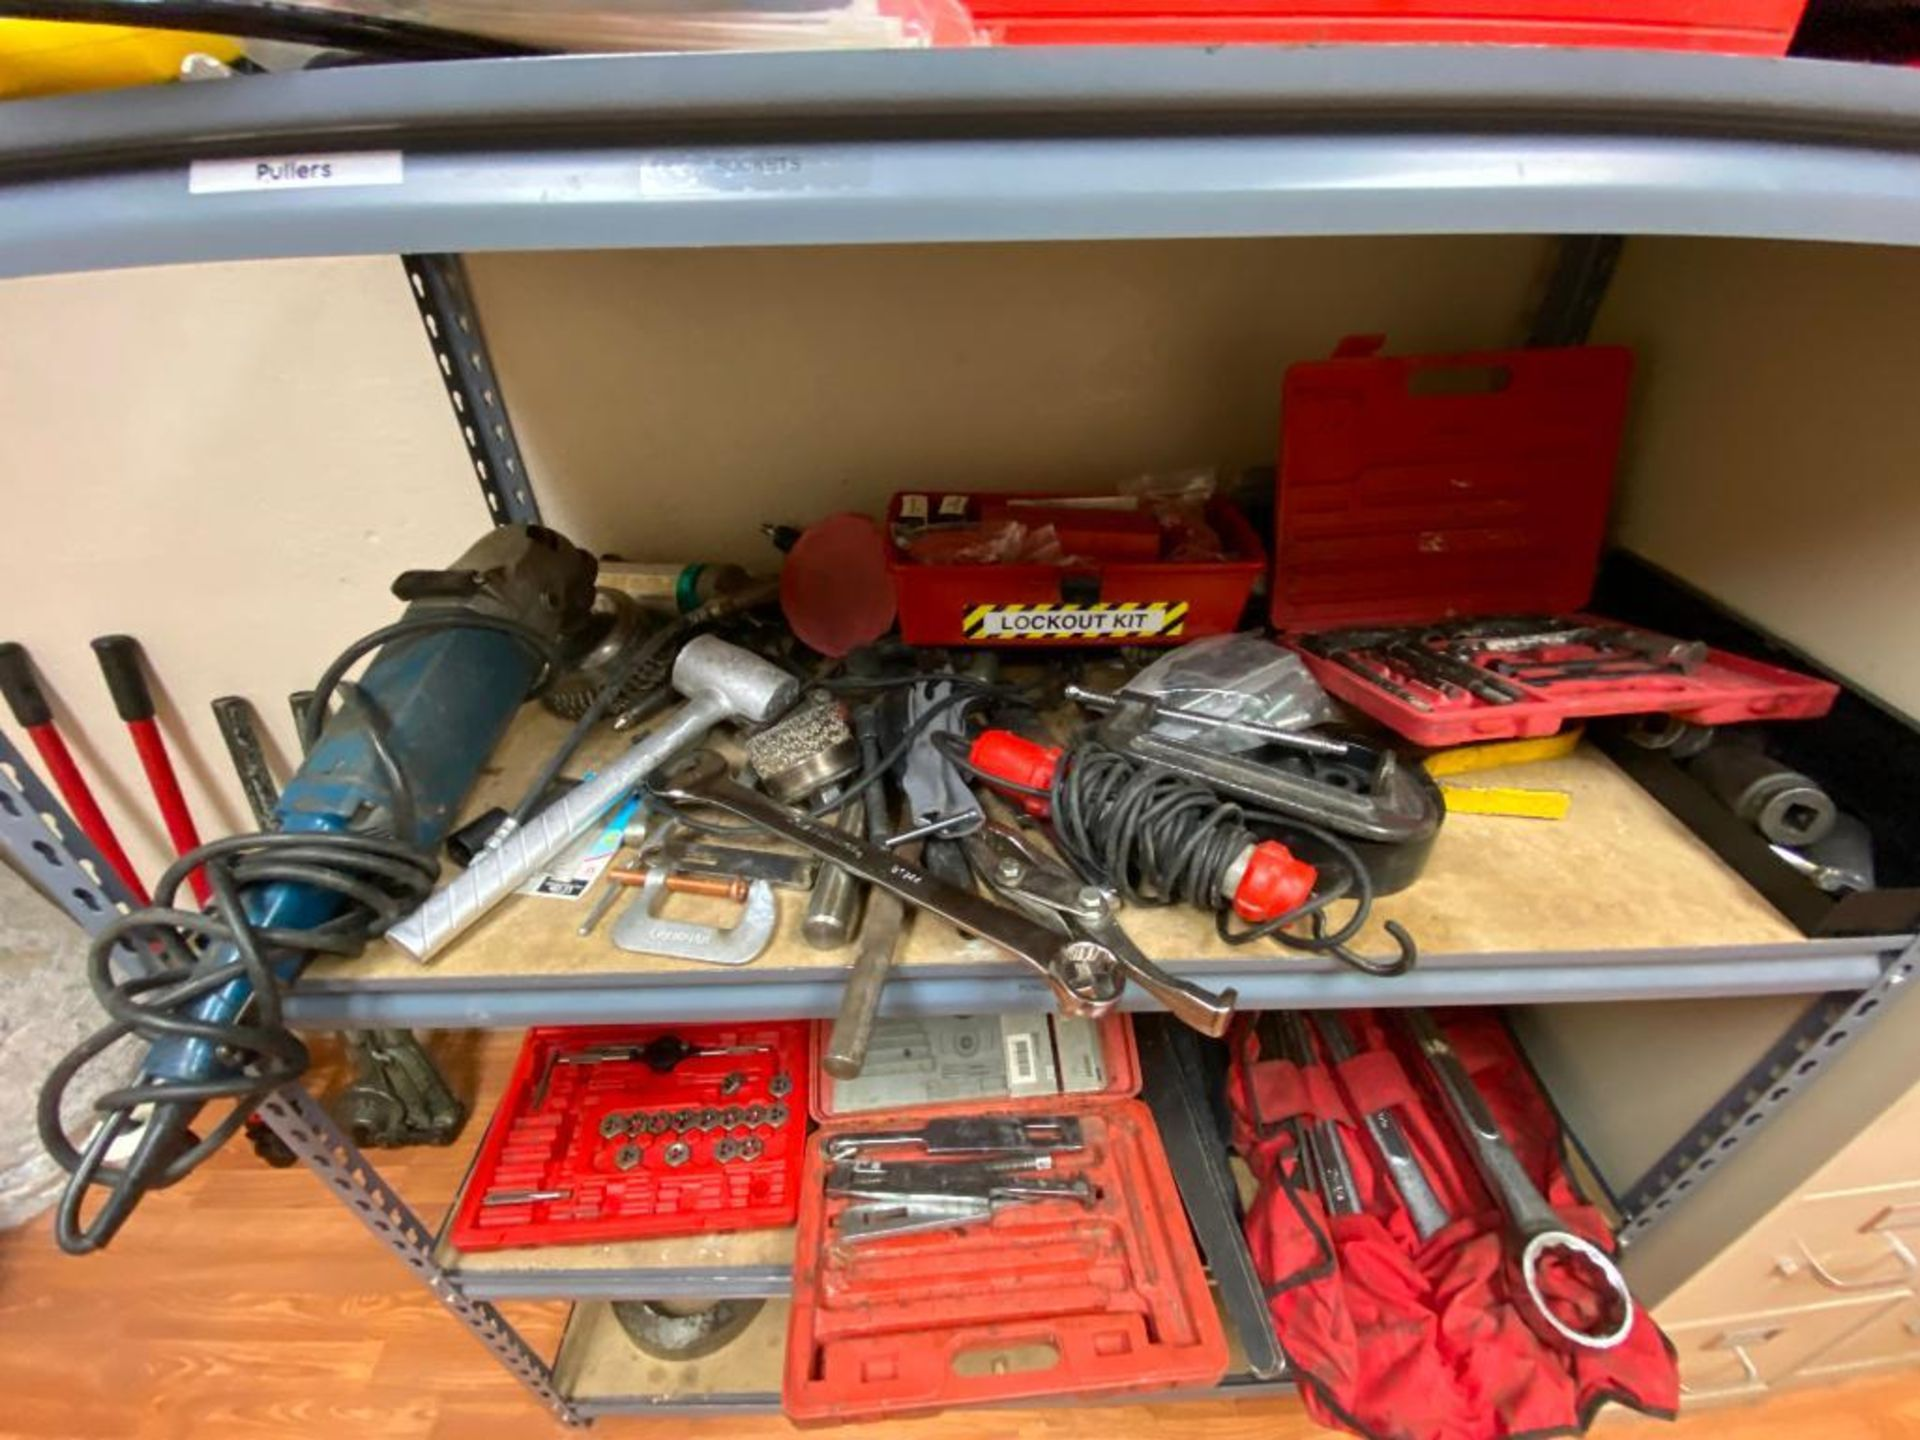 various tools includes bits, large wrenches, lockout tagout kit, grinder - Image 7 of 18